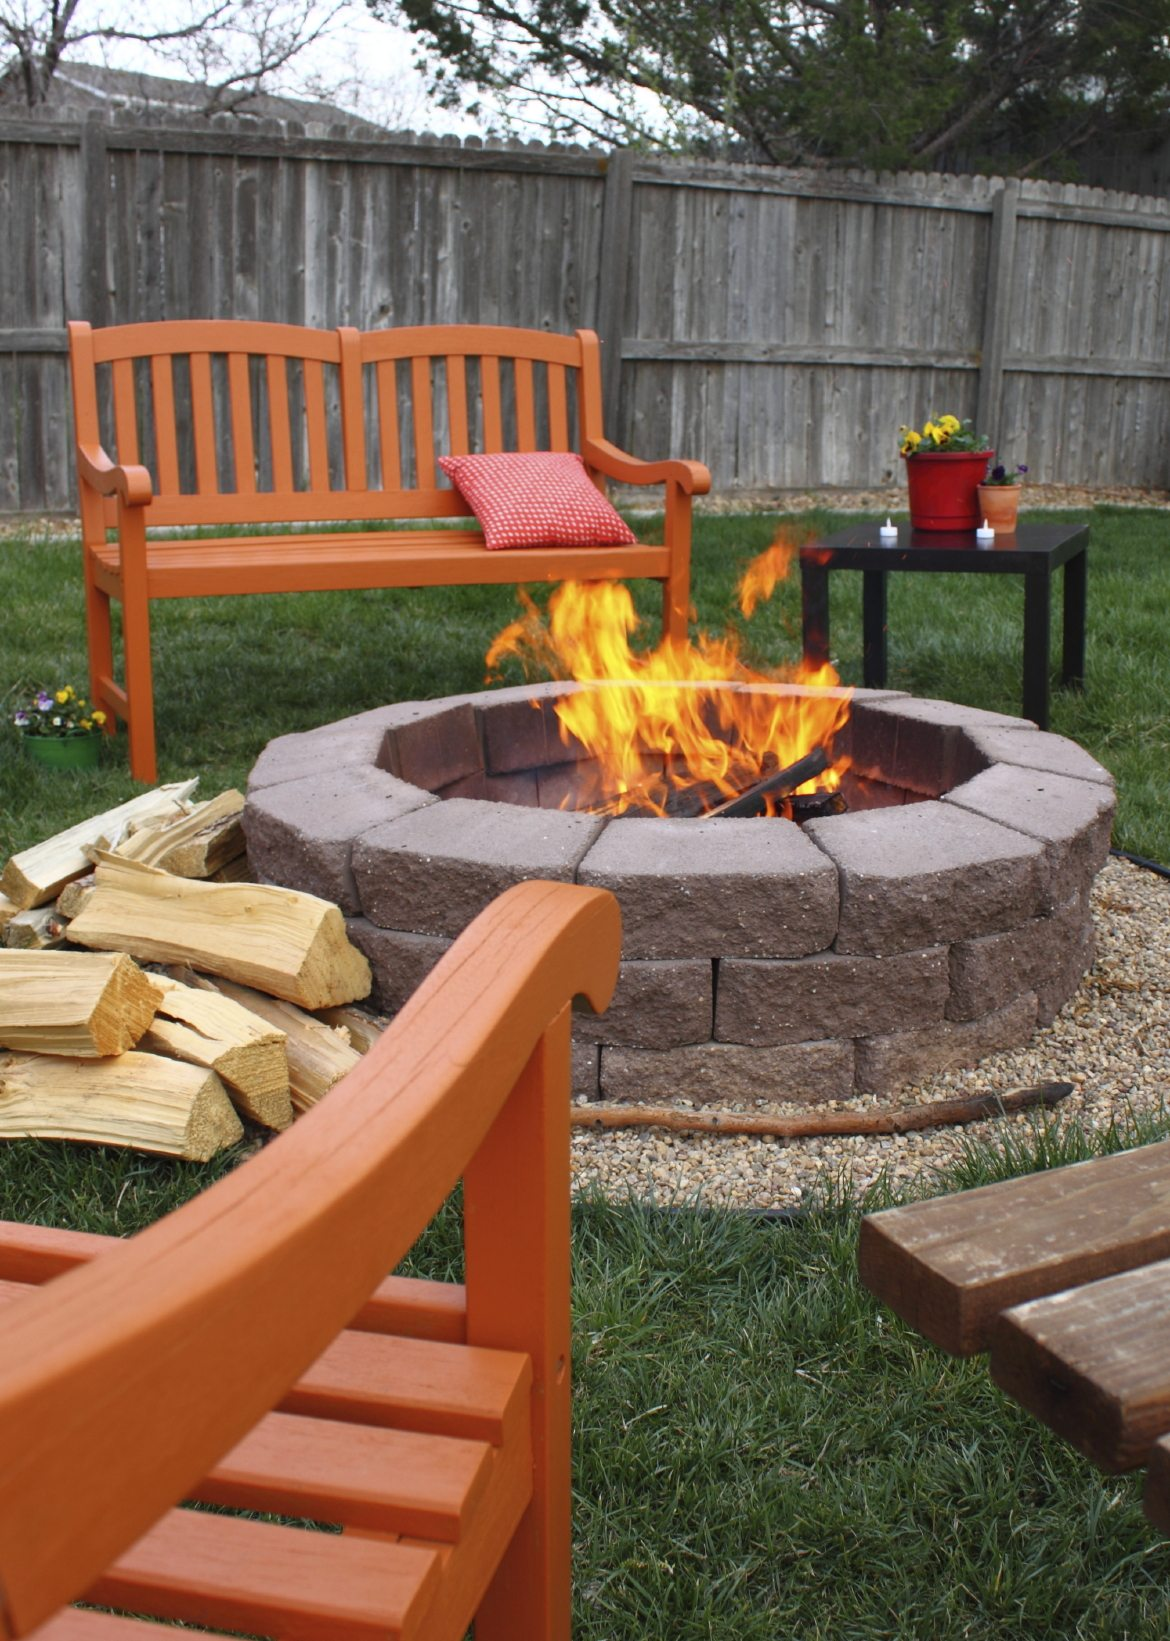 Using Fire Pits In Gardens Tips On Building A Backyard Fire Pit